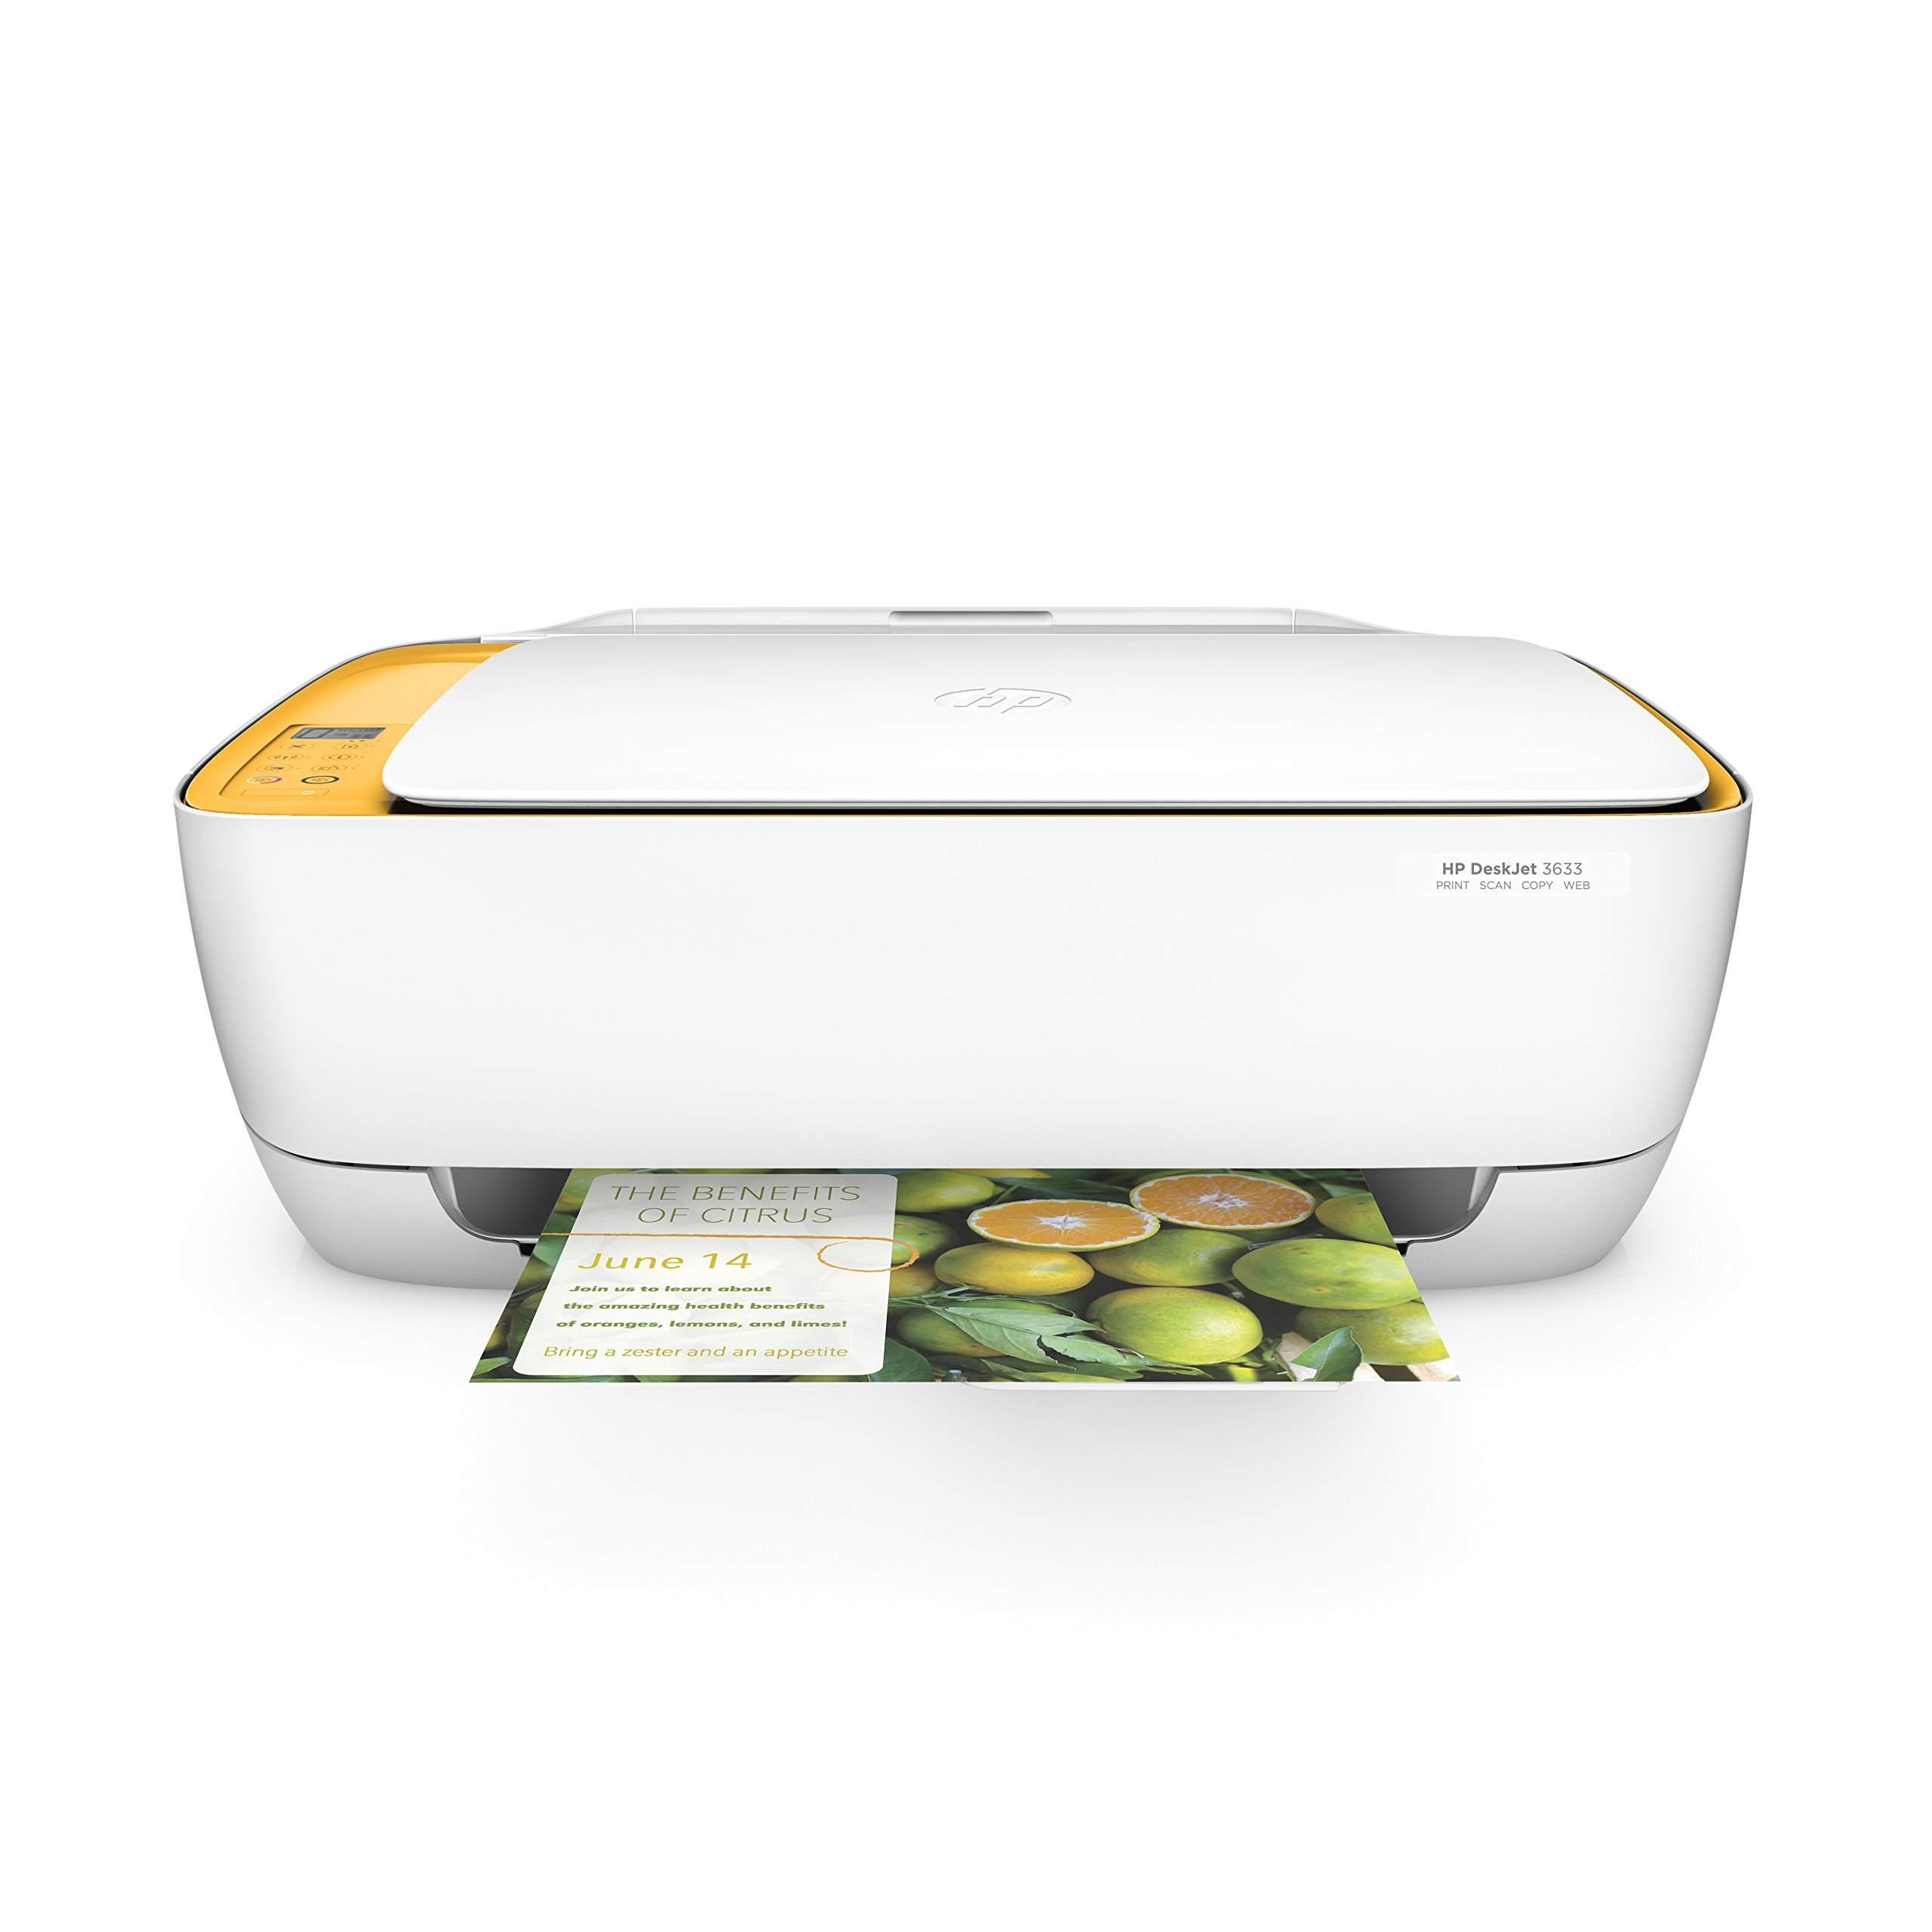 HP DeskJet 3633 Compact All-in-One Wireless Printer with Mobile Printing, Instant Ink ready (K4T95A)